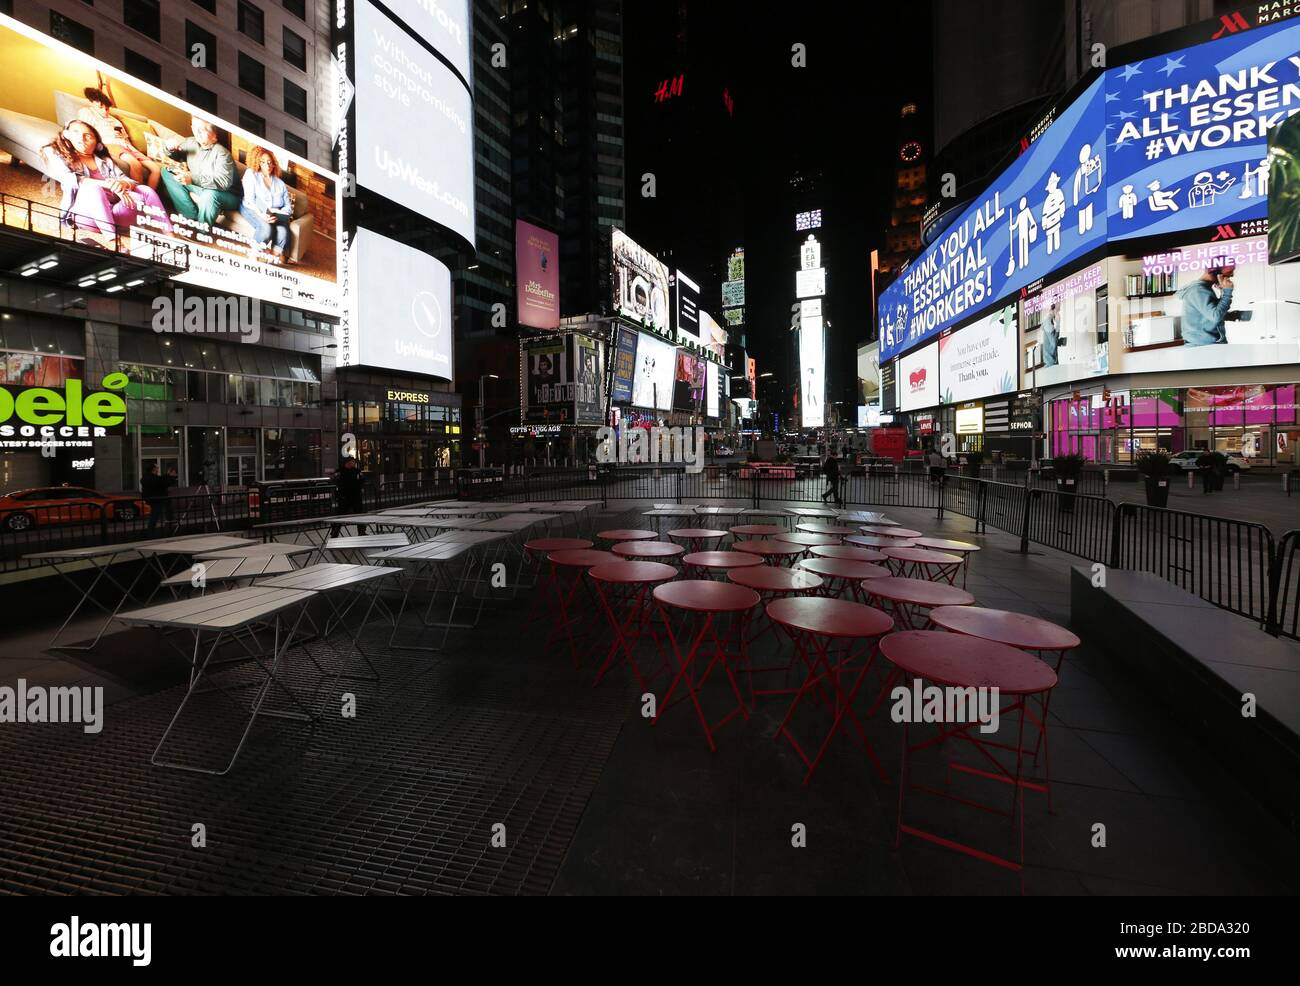 New York, United States. 08th Apr, 2020. Messages celebrating healthcare and essential workers are displayed on the jumbo screens in an almost completely empty Times Square in New York City on Tuesday, April 7, 2020. Coronavirus deaths in the U.S. climb above 12,000 as New York City suffers deadliest day with over 800 dying in the 24 hours since Monday night. Photo by John Angelillo/UPI Credit: UPI/Alamy Live News Stock Photo